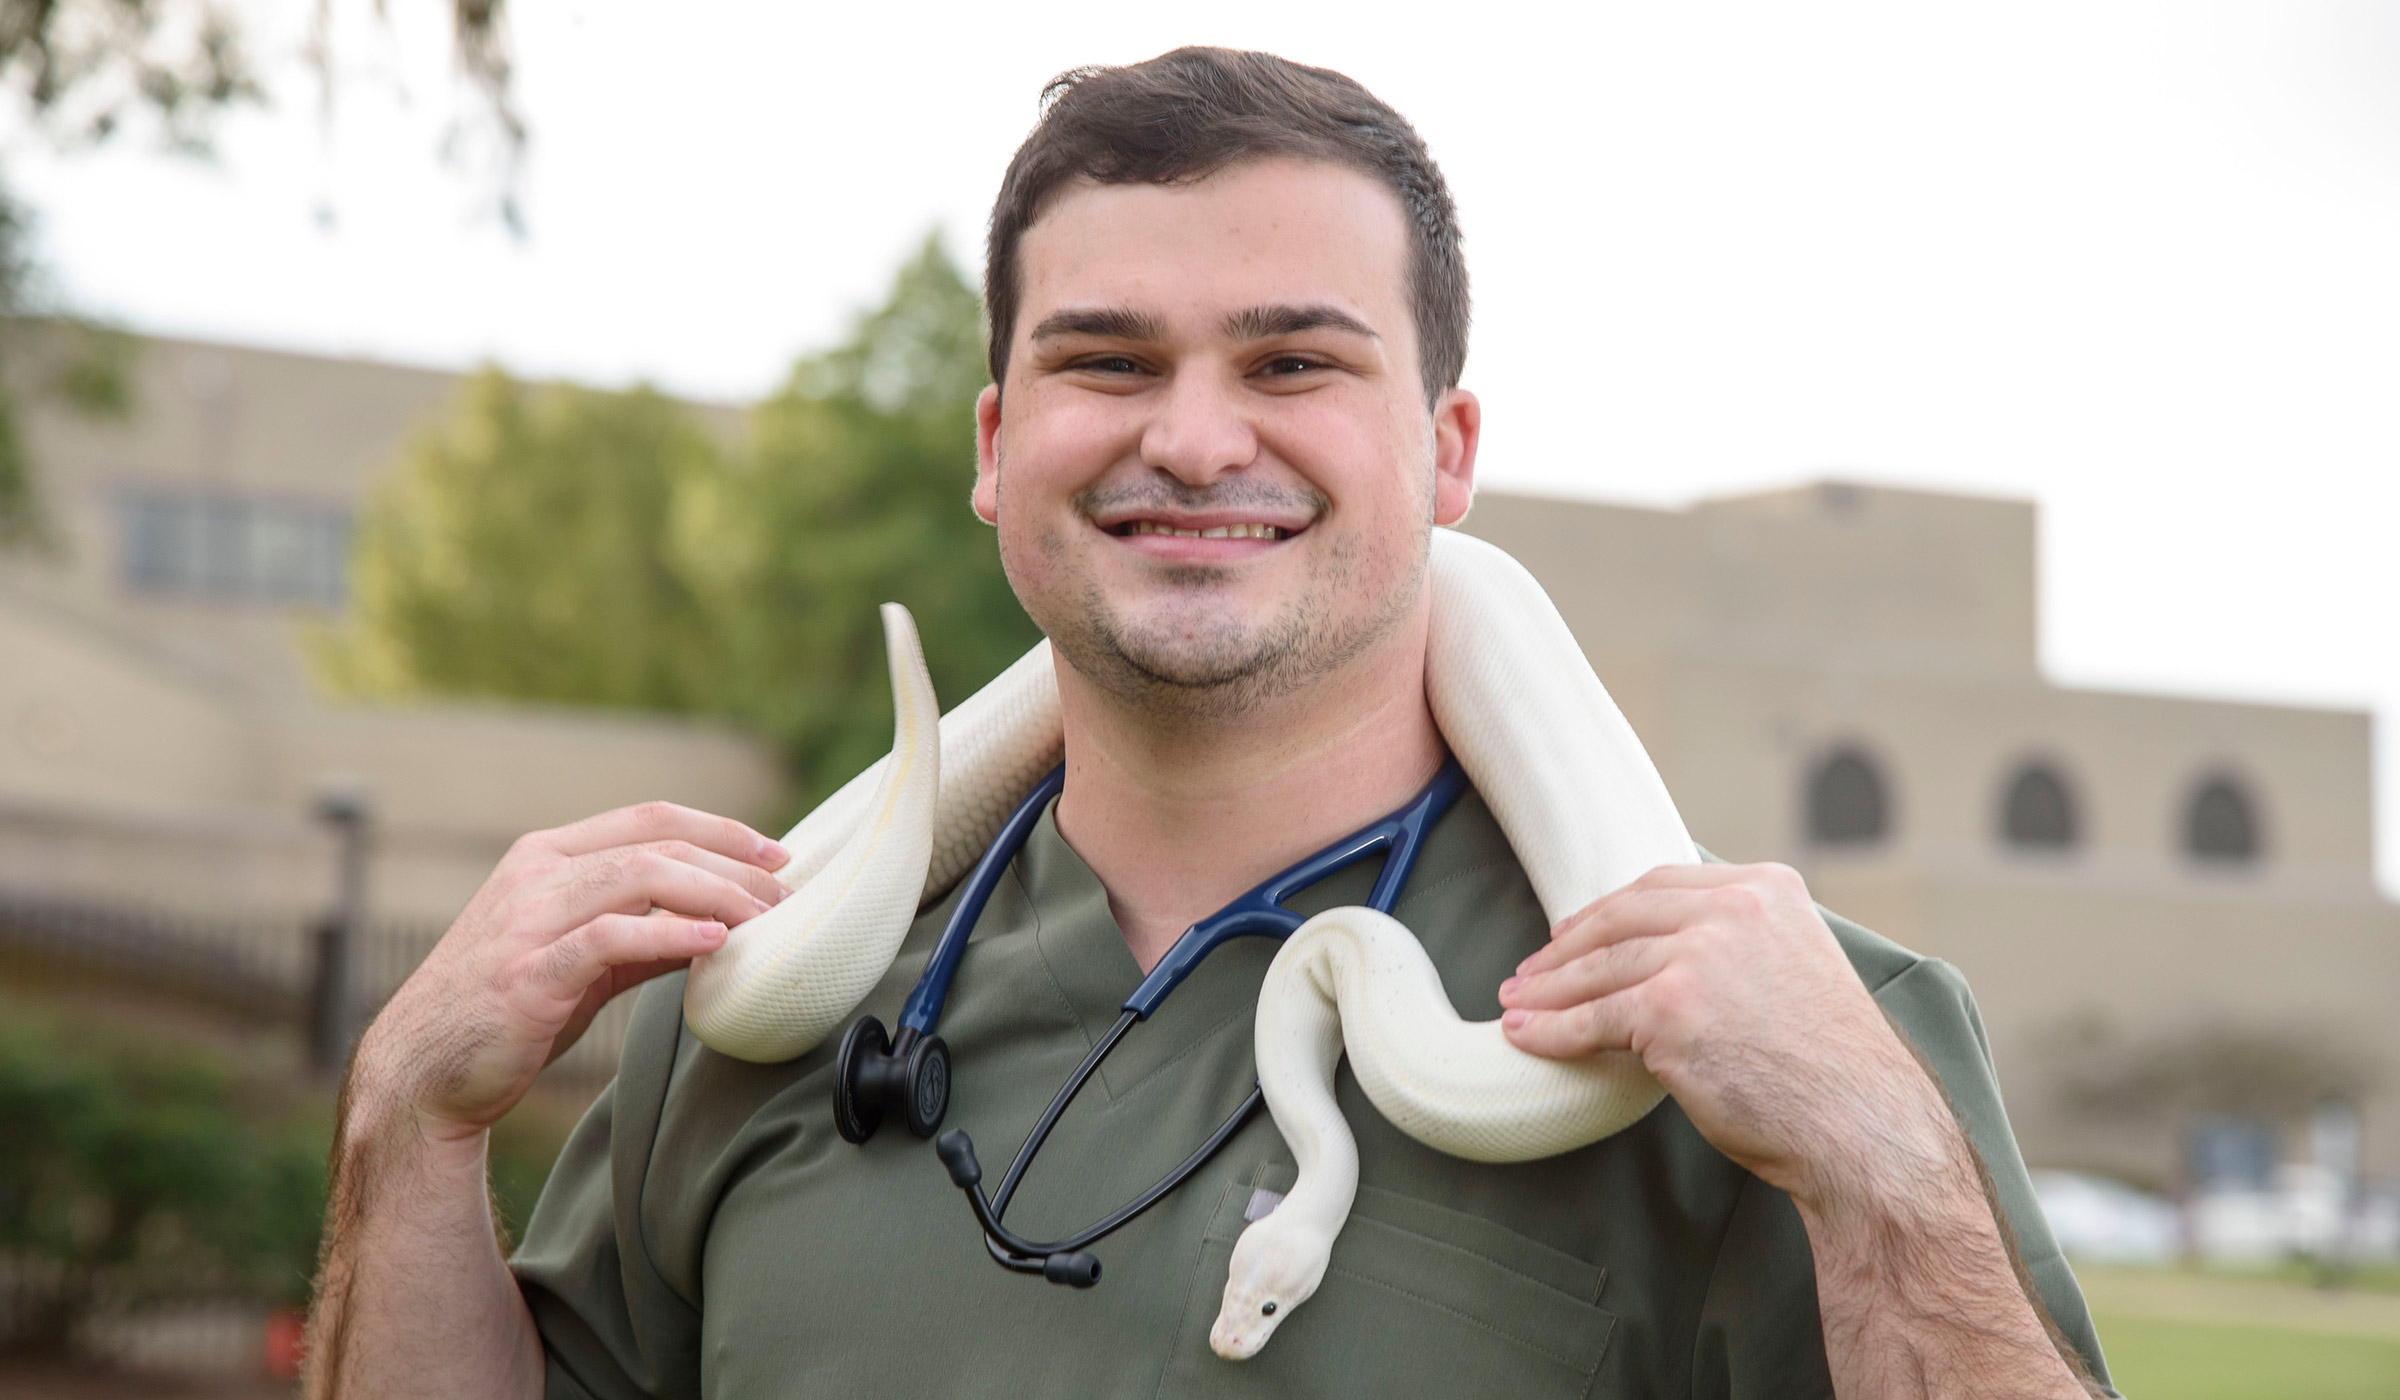 Travis Noto, pictured with a pet snake draped over his shoulders.